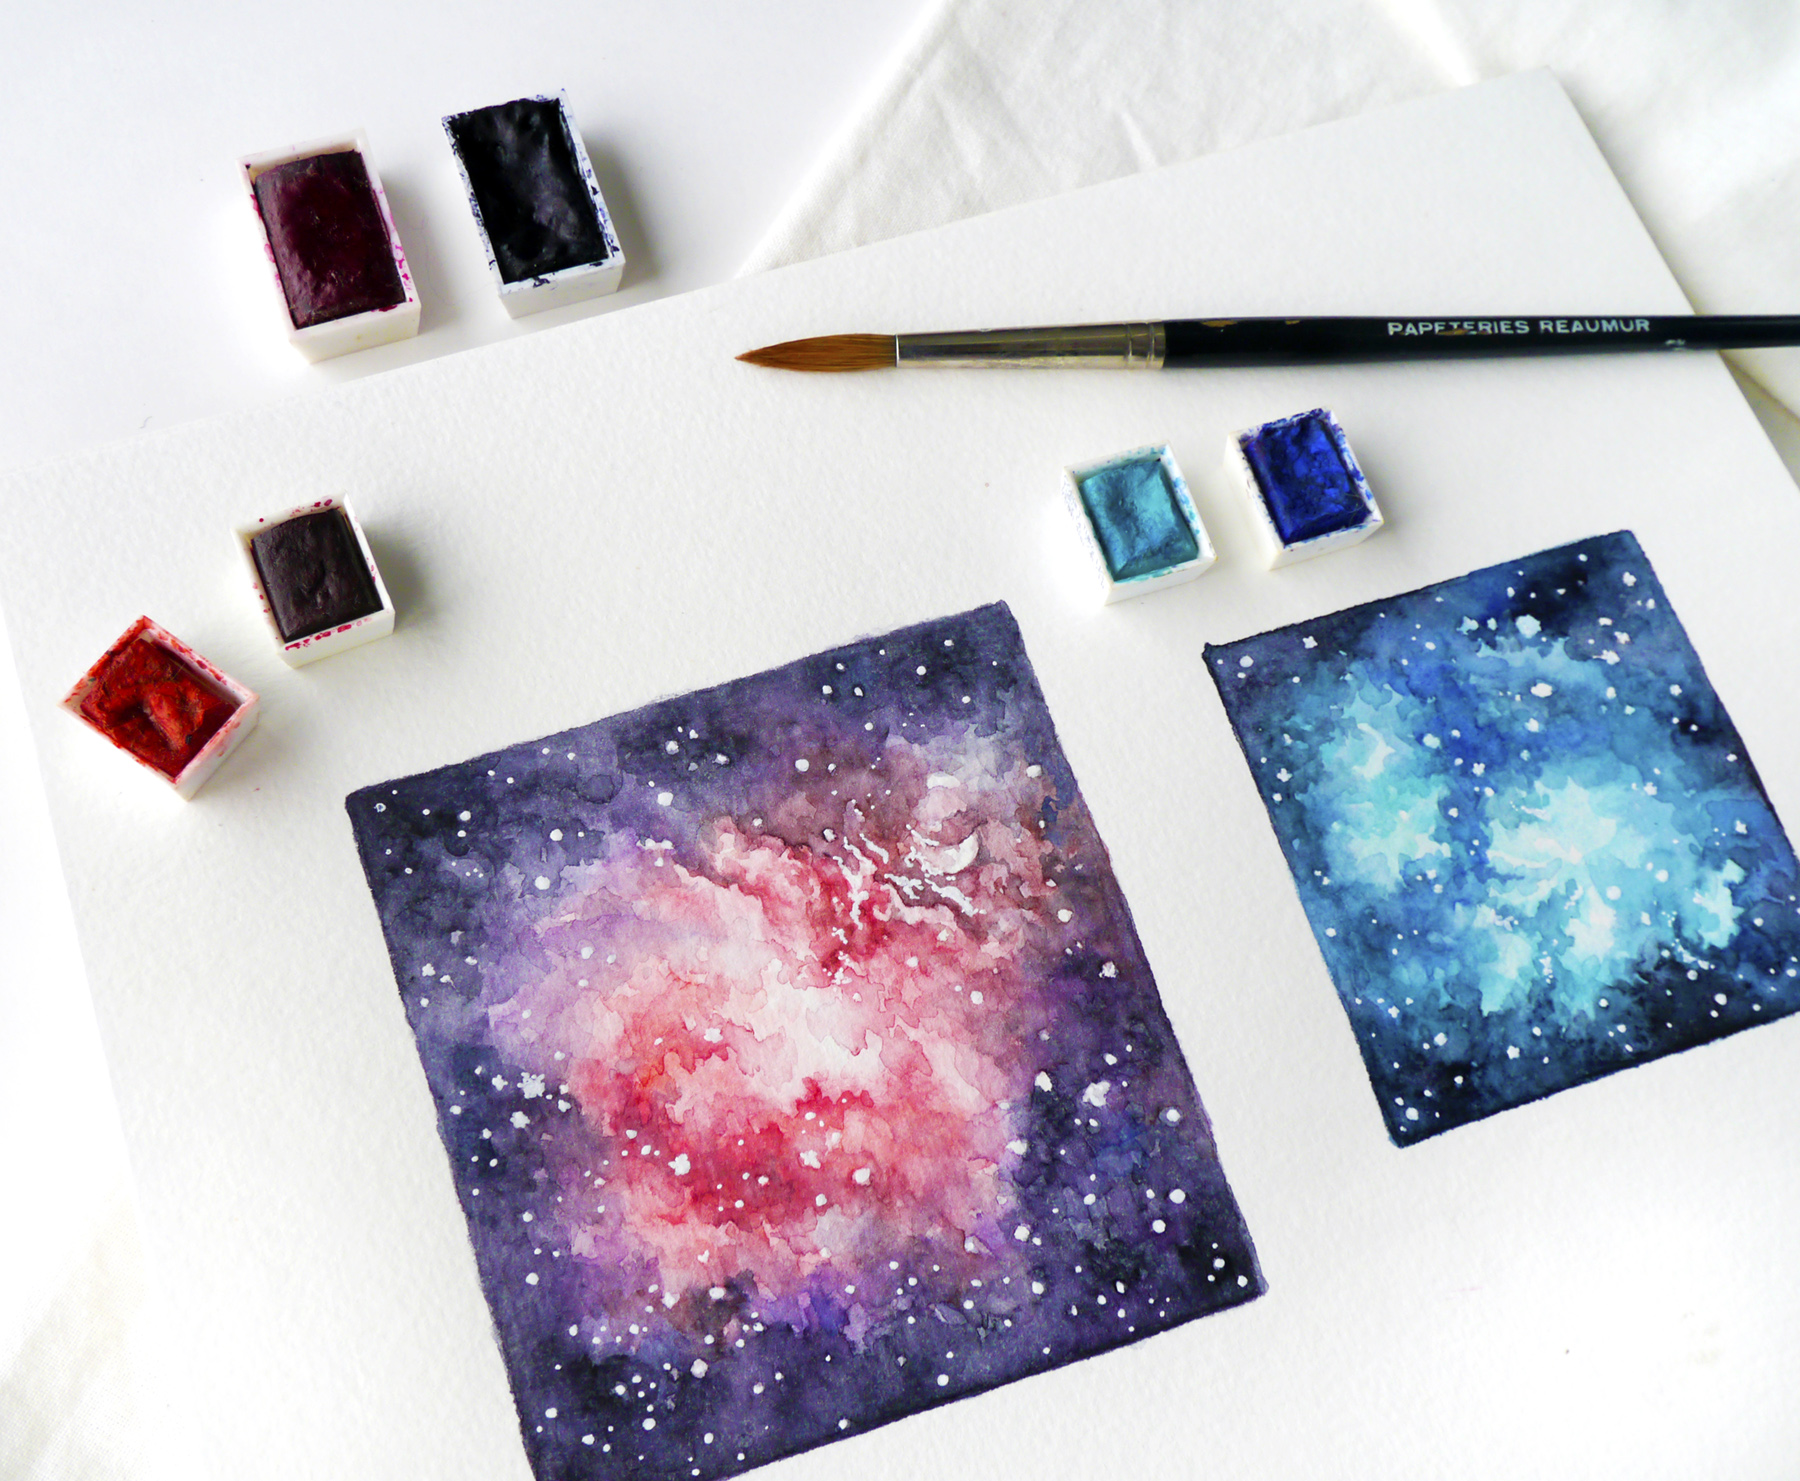 Printables & lots of creative ideas for last-minute Valentine's Day gifts! Doesn't matter if you're an artist or not, little hand-made gifts and cards are easy to make and all the more romantic! I've got some tips and resources for you, no matter if you want to try your hand at brush calligraphy, a simple watercolor galaxy pattern card, or Valentine's chocolates. Let's get artsy! If you're really not creative (or in a hurry!) I've got romantic printable stationery for you, all hand-drawn with love. And you can use my free printable gift tags to decorate your Valentine's Day gifts.